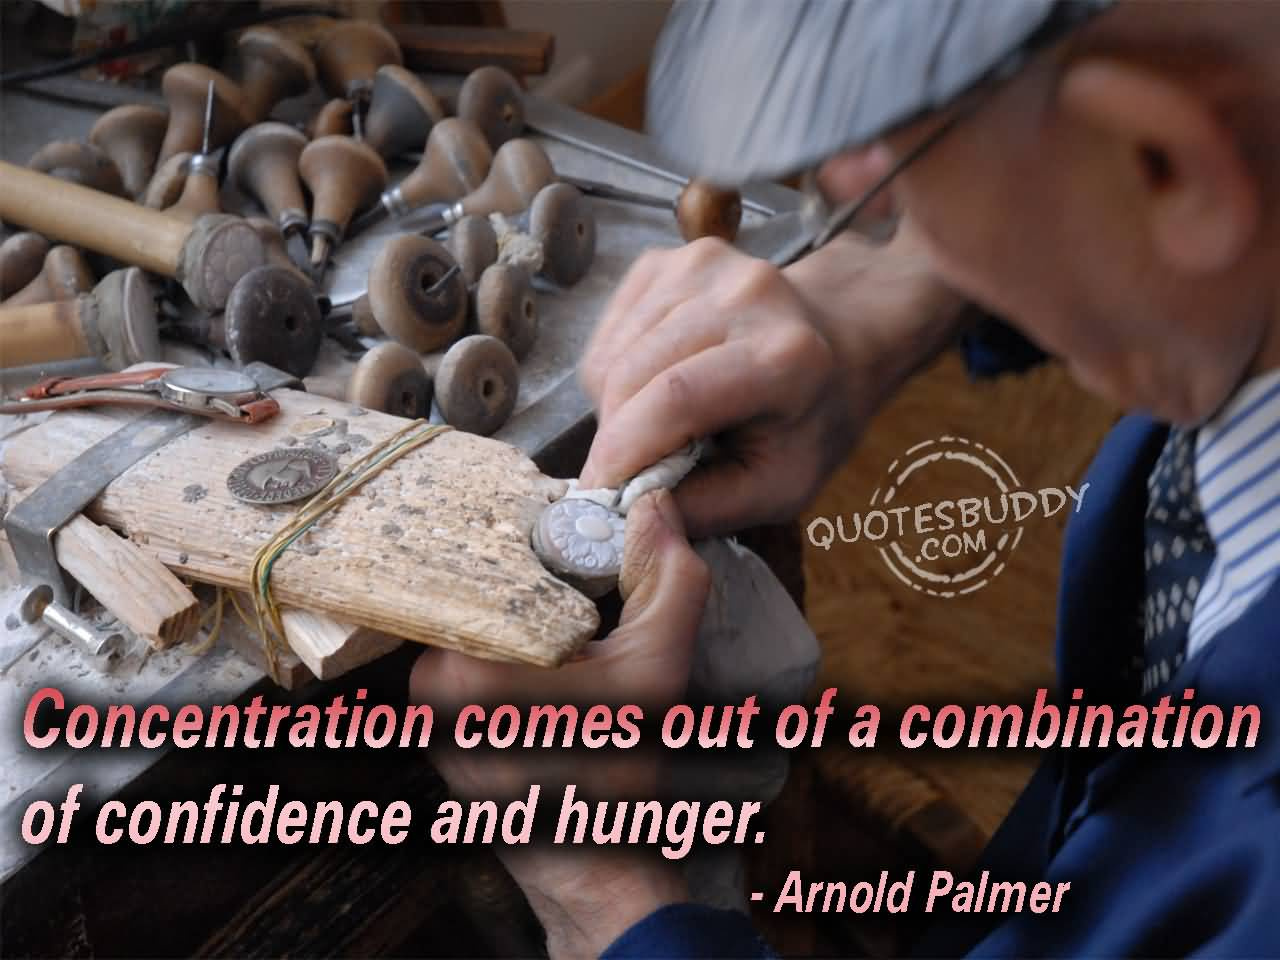 Concentration comes out of a combination of confidence and hunger - Arnold Palmer